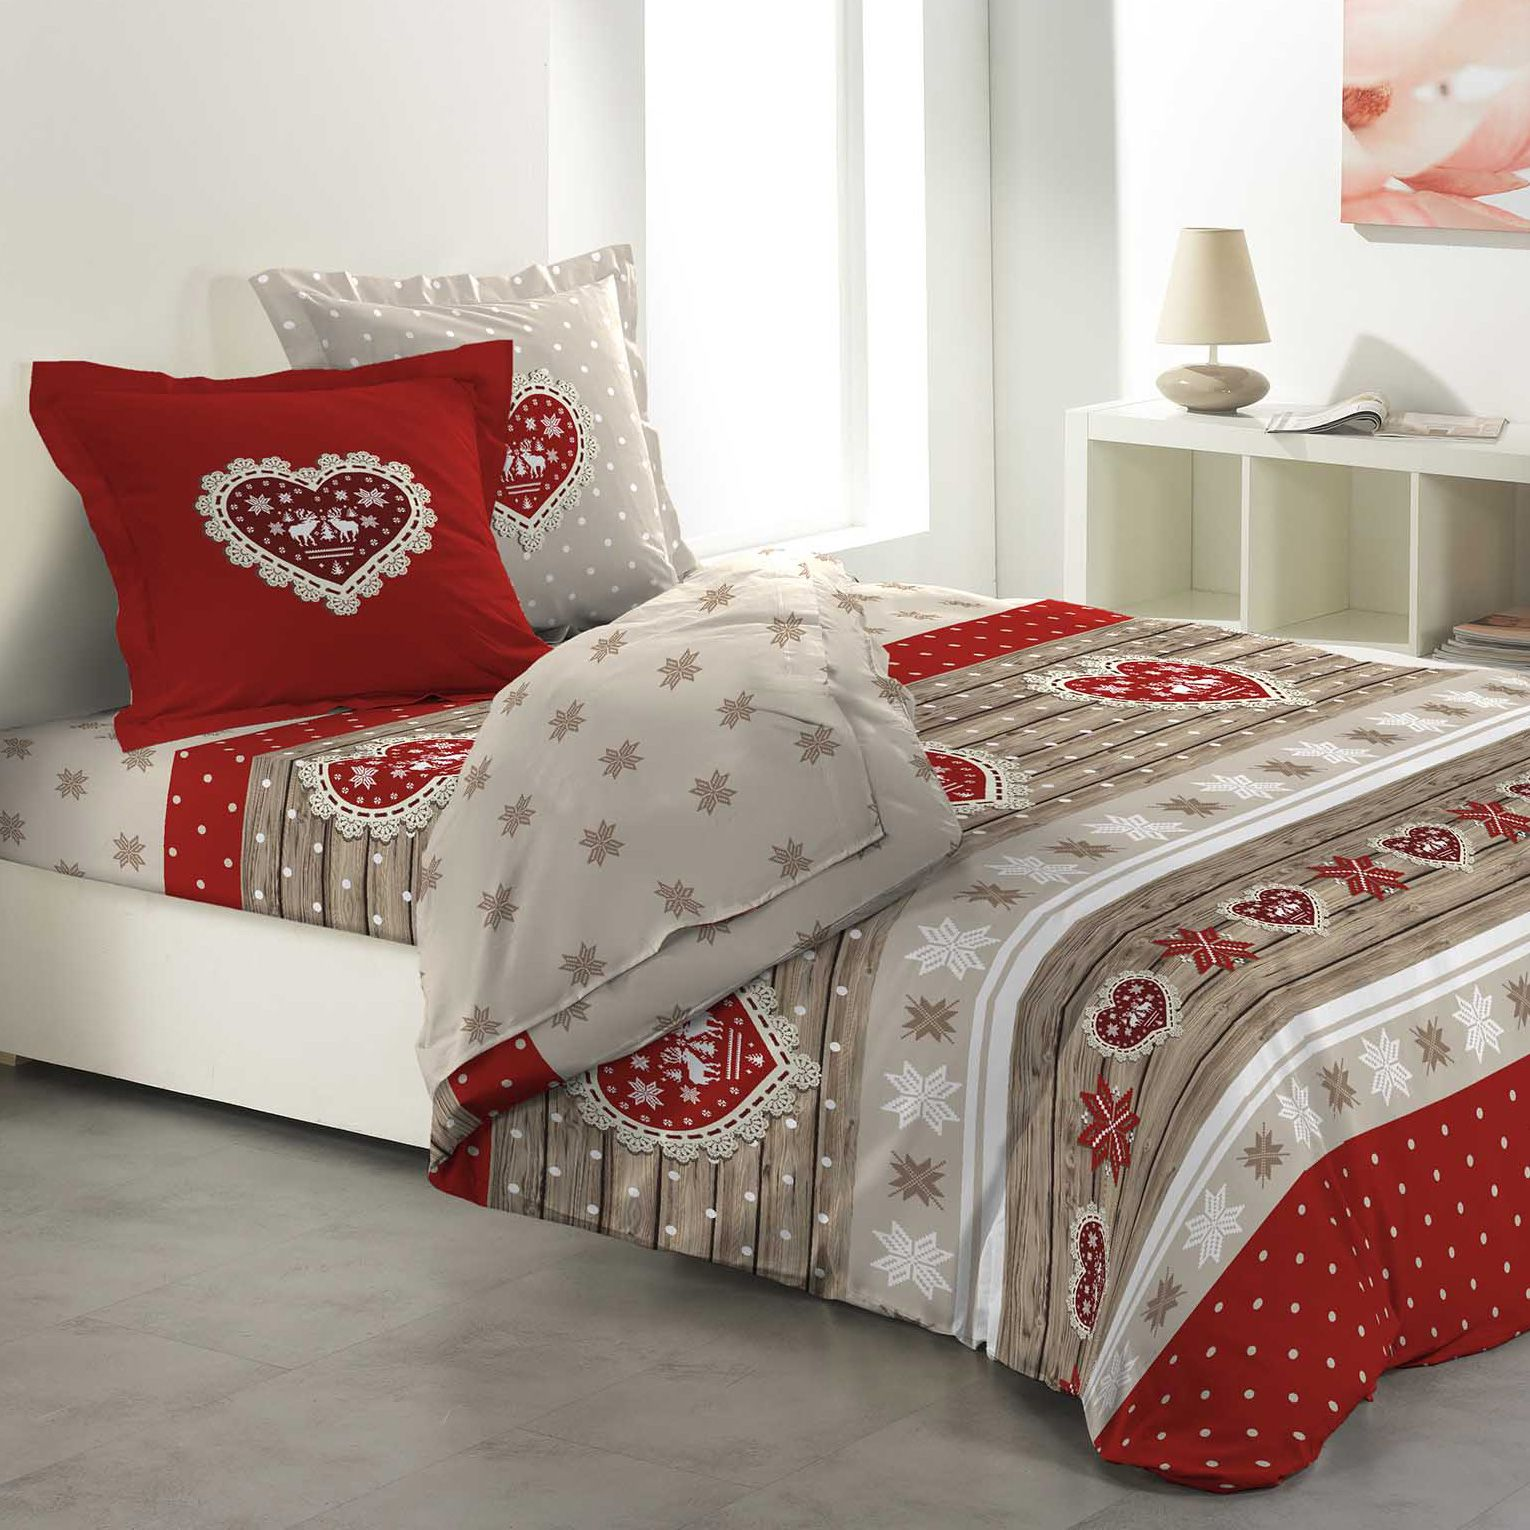 parure de draps 4 pi ces lit 160 cm 100 flanelle de coton coeur rouge parure de draps eminza. Black Bedroom Furniture Sets. Home Design Ideas